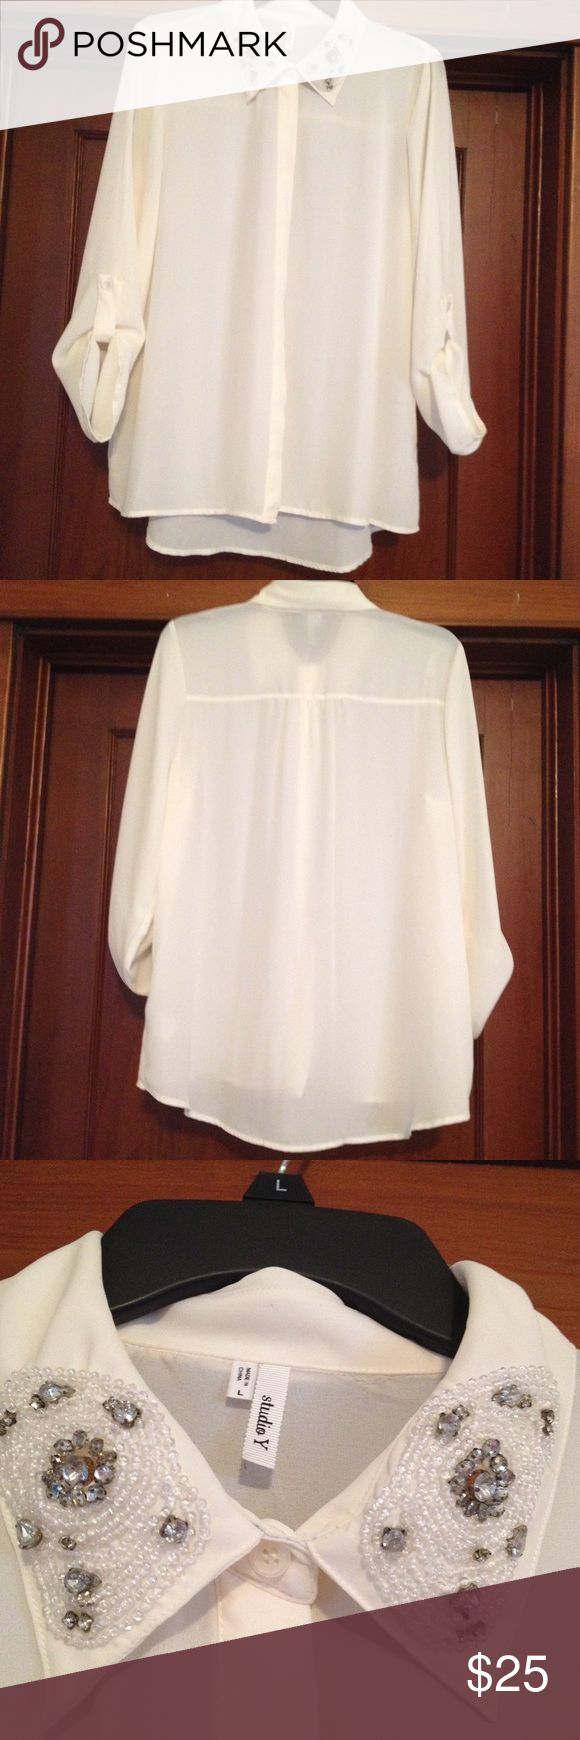 Studio Y cream long sleeved top size L Studio Y Creme long sleeved blouse . Has front bottom closure with overlay and sleeves can be raised and buttoned. Has rhinestones and beads on color. Studio Y Tops Blouses